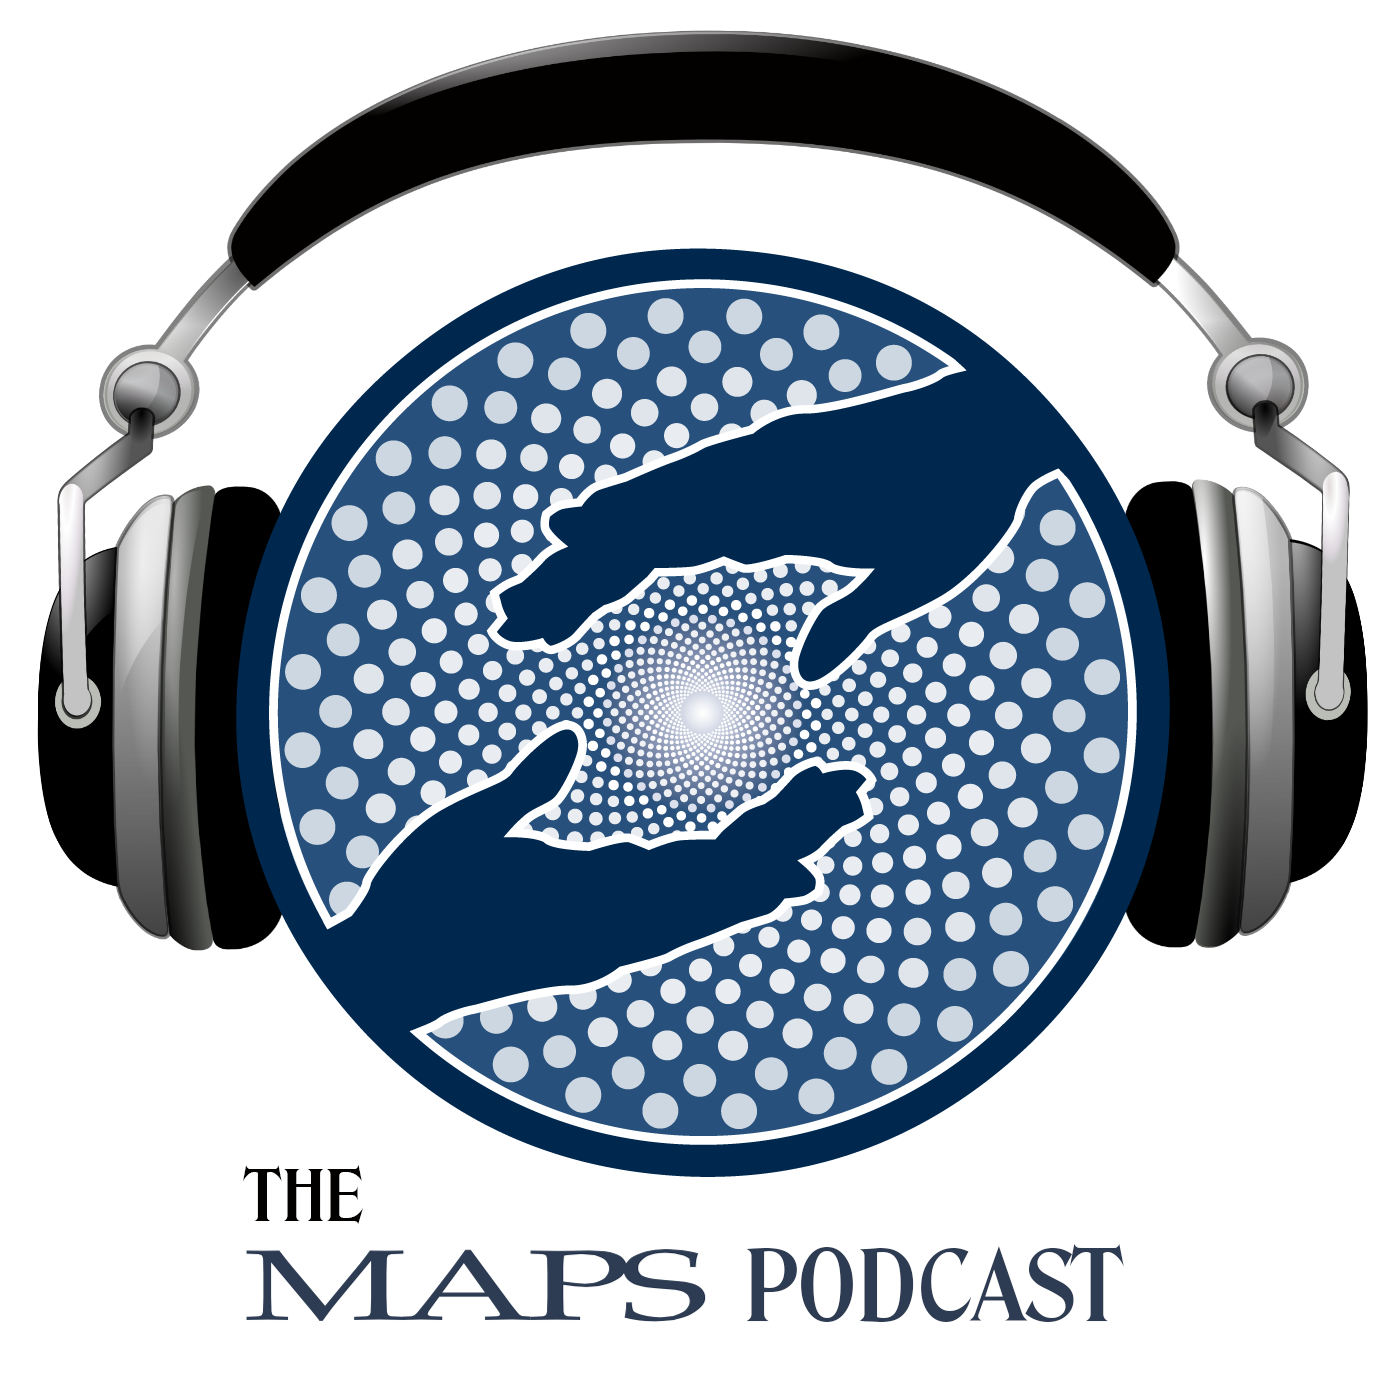 The MAPS Podcast - A variety of topics all related to psychedelic research by the legends over at the Multidisciplinary Association for Psychedelic Studies.